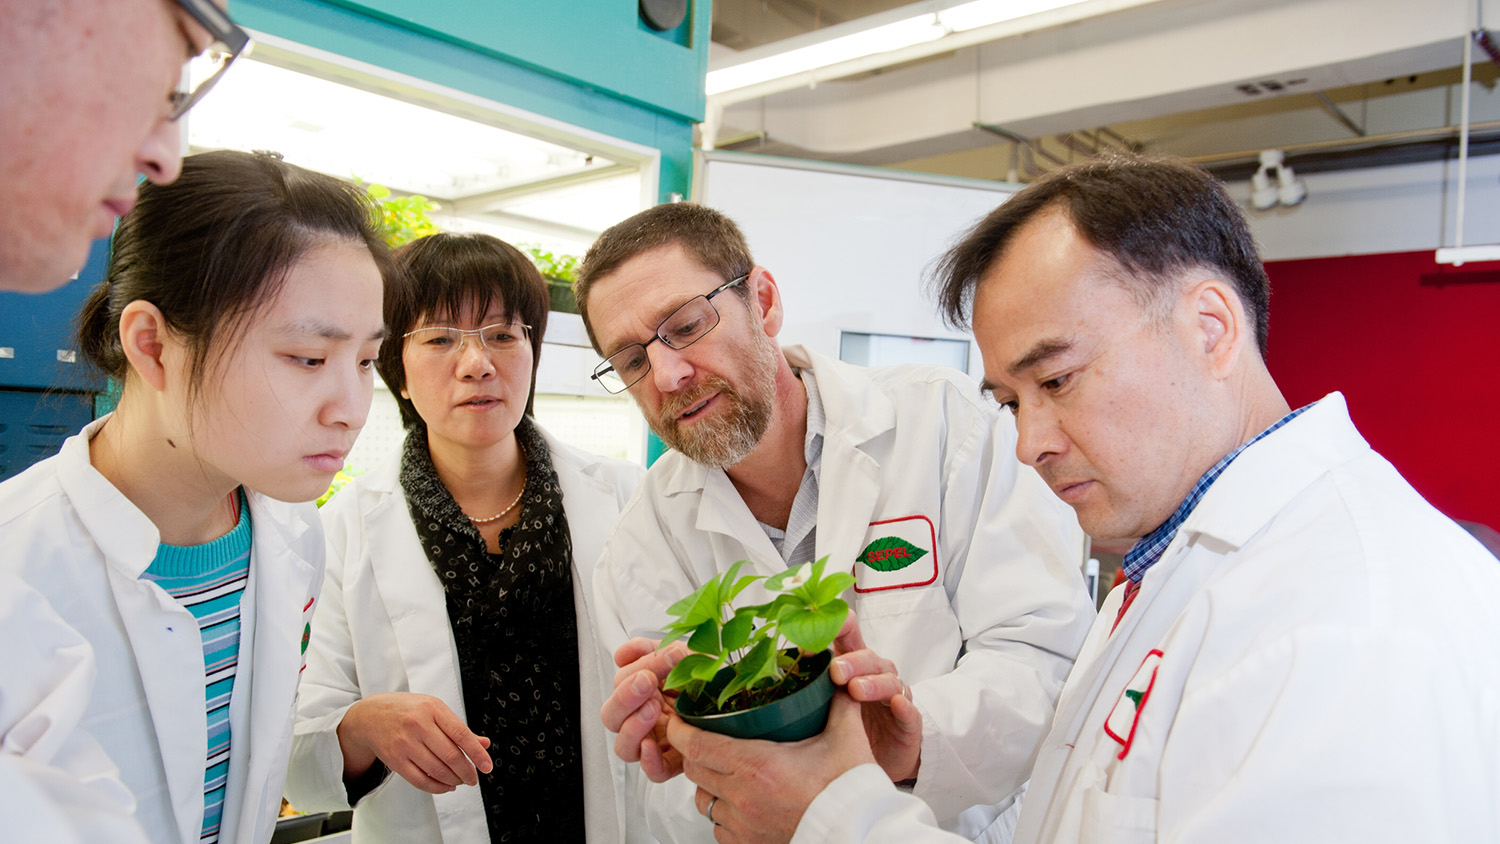 Five NC State College of Agriculture and Life Sciences researchers examine a small dogwood plant in a pot in a laboratory setting.